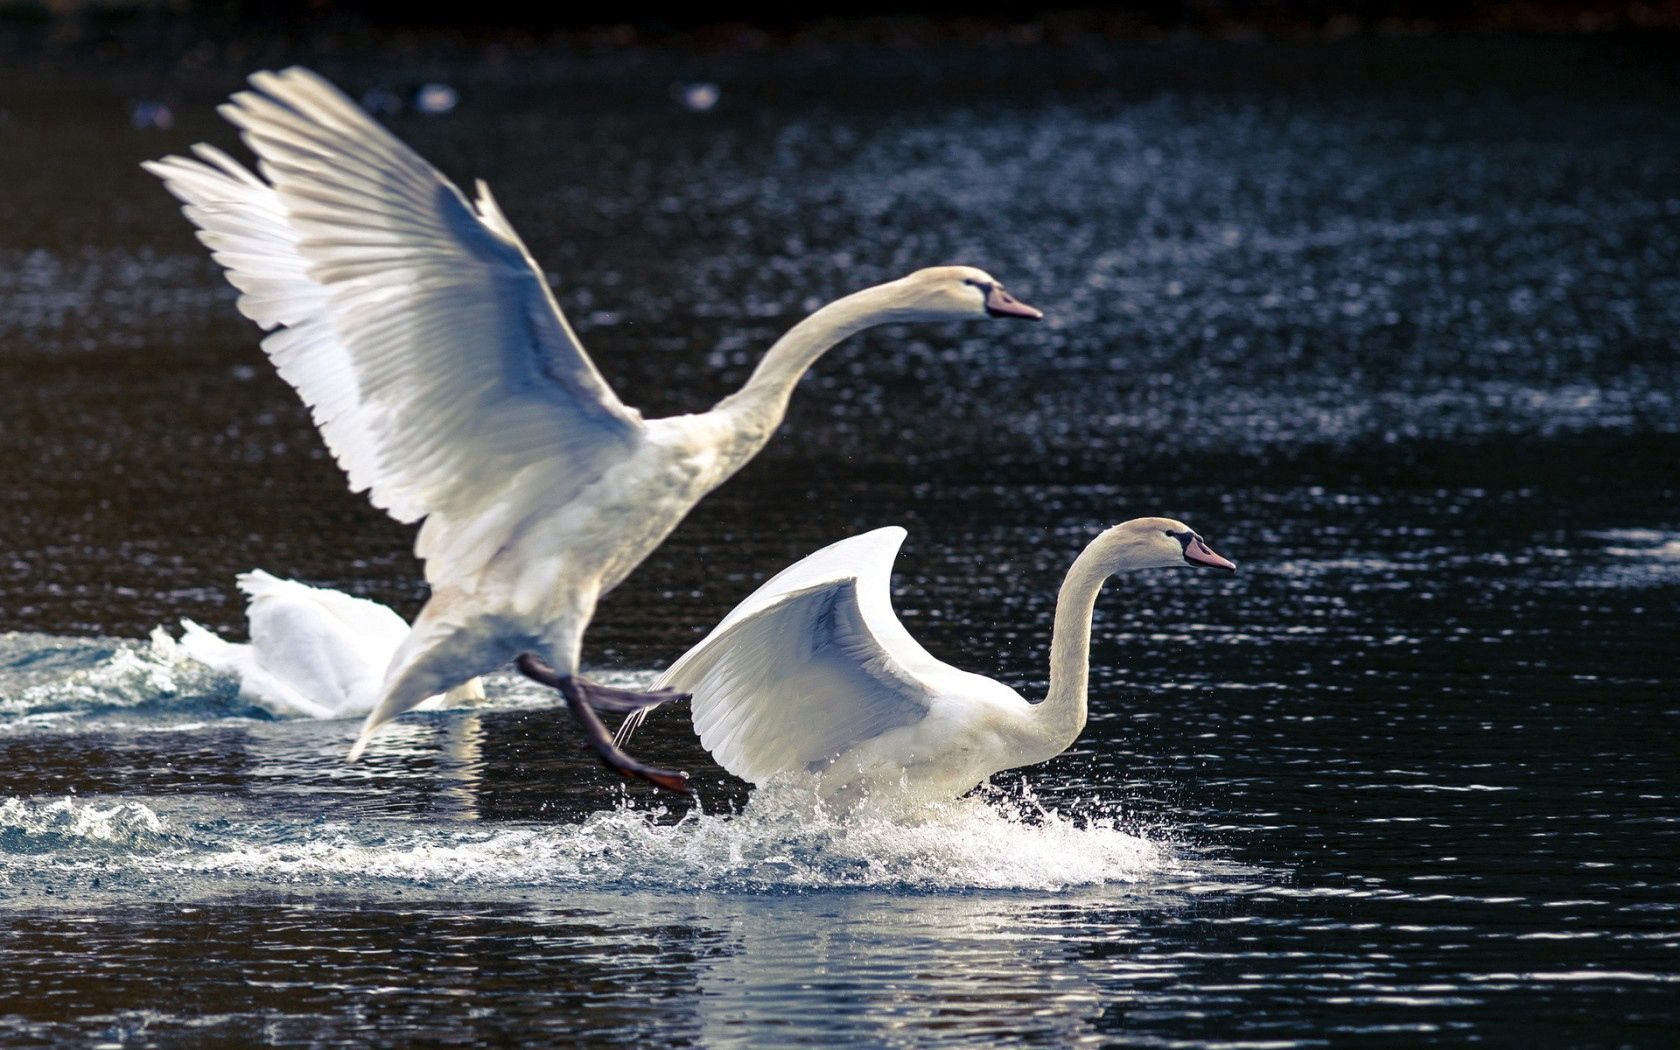 112552 download wallpaper Animals, Swans, Lake, Nature screensavers and pictures for free